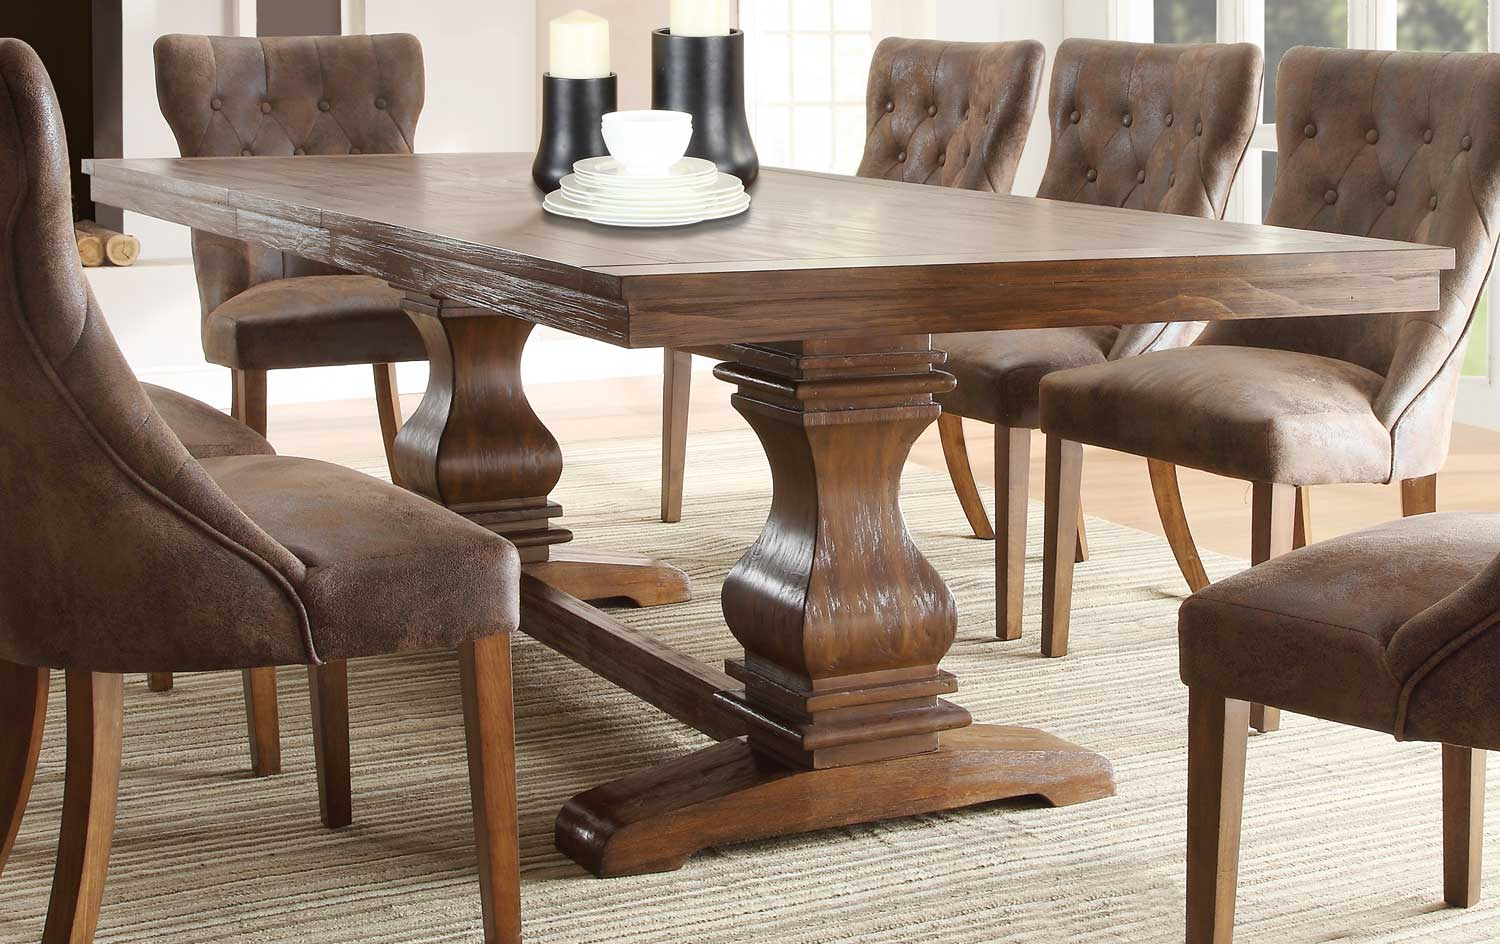 Homelegance Marie Louise Dining Table - Rustic Oak Brown